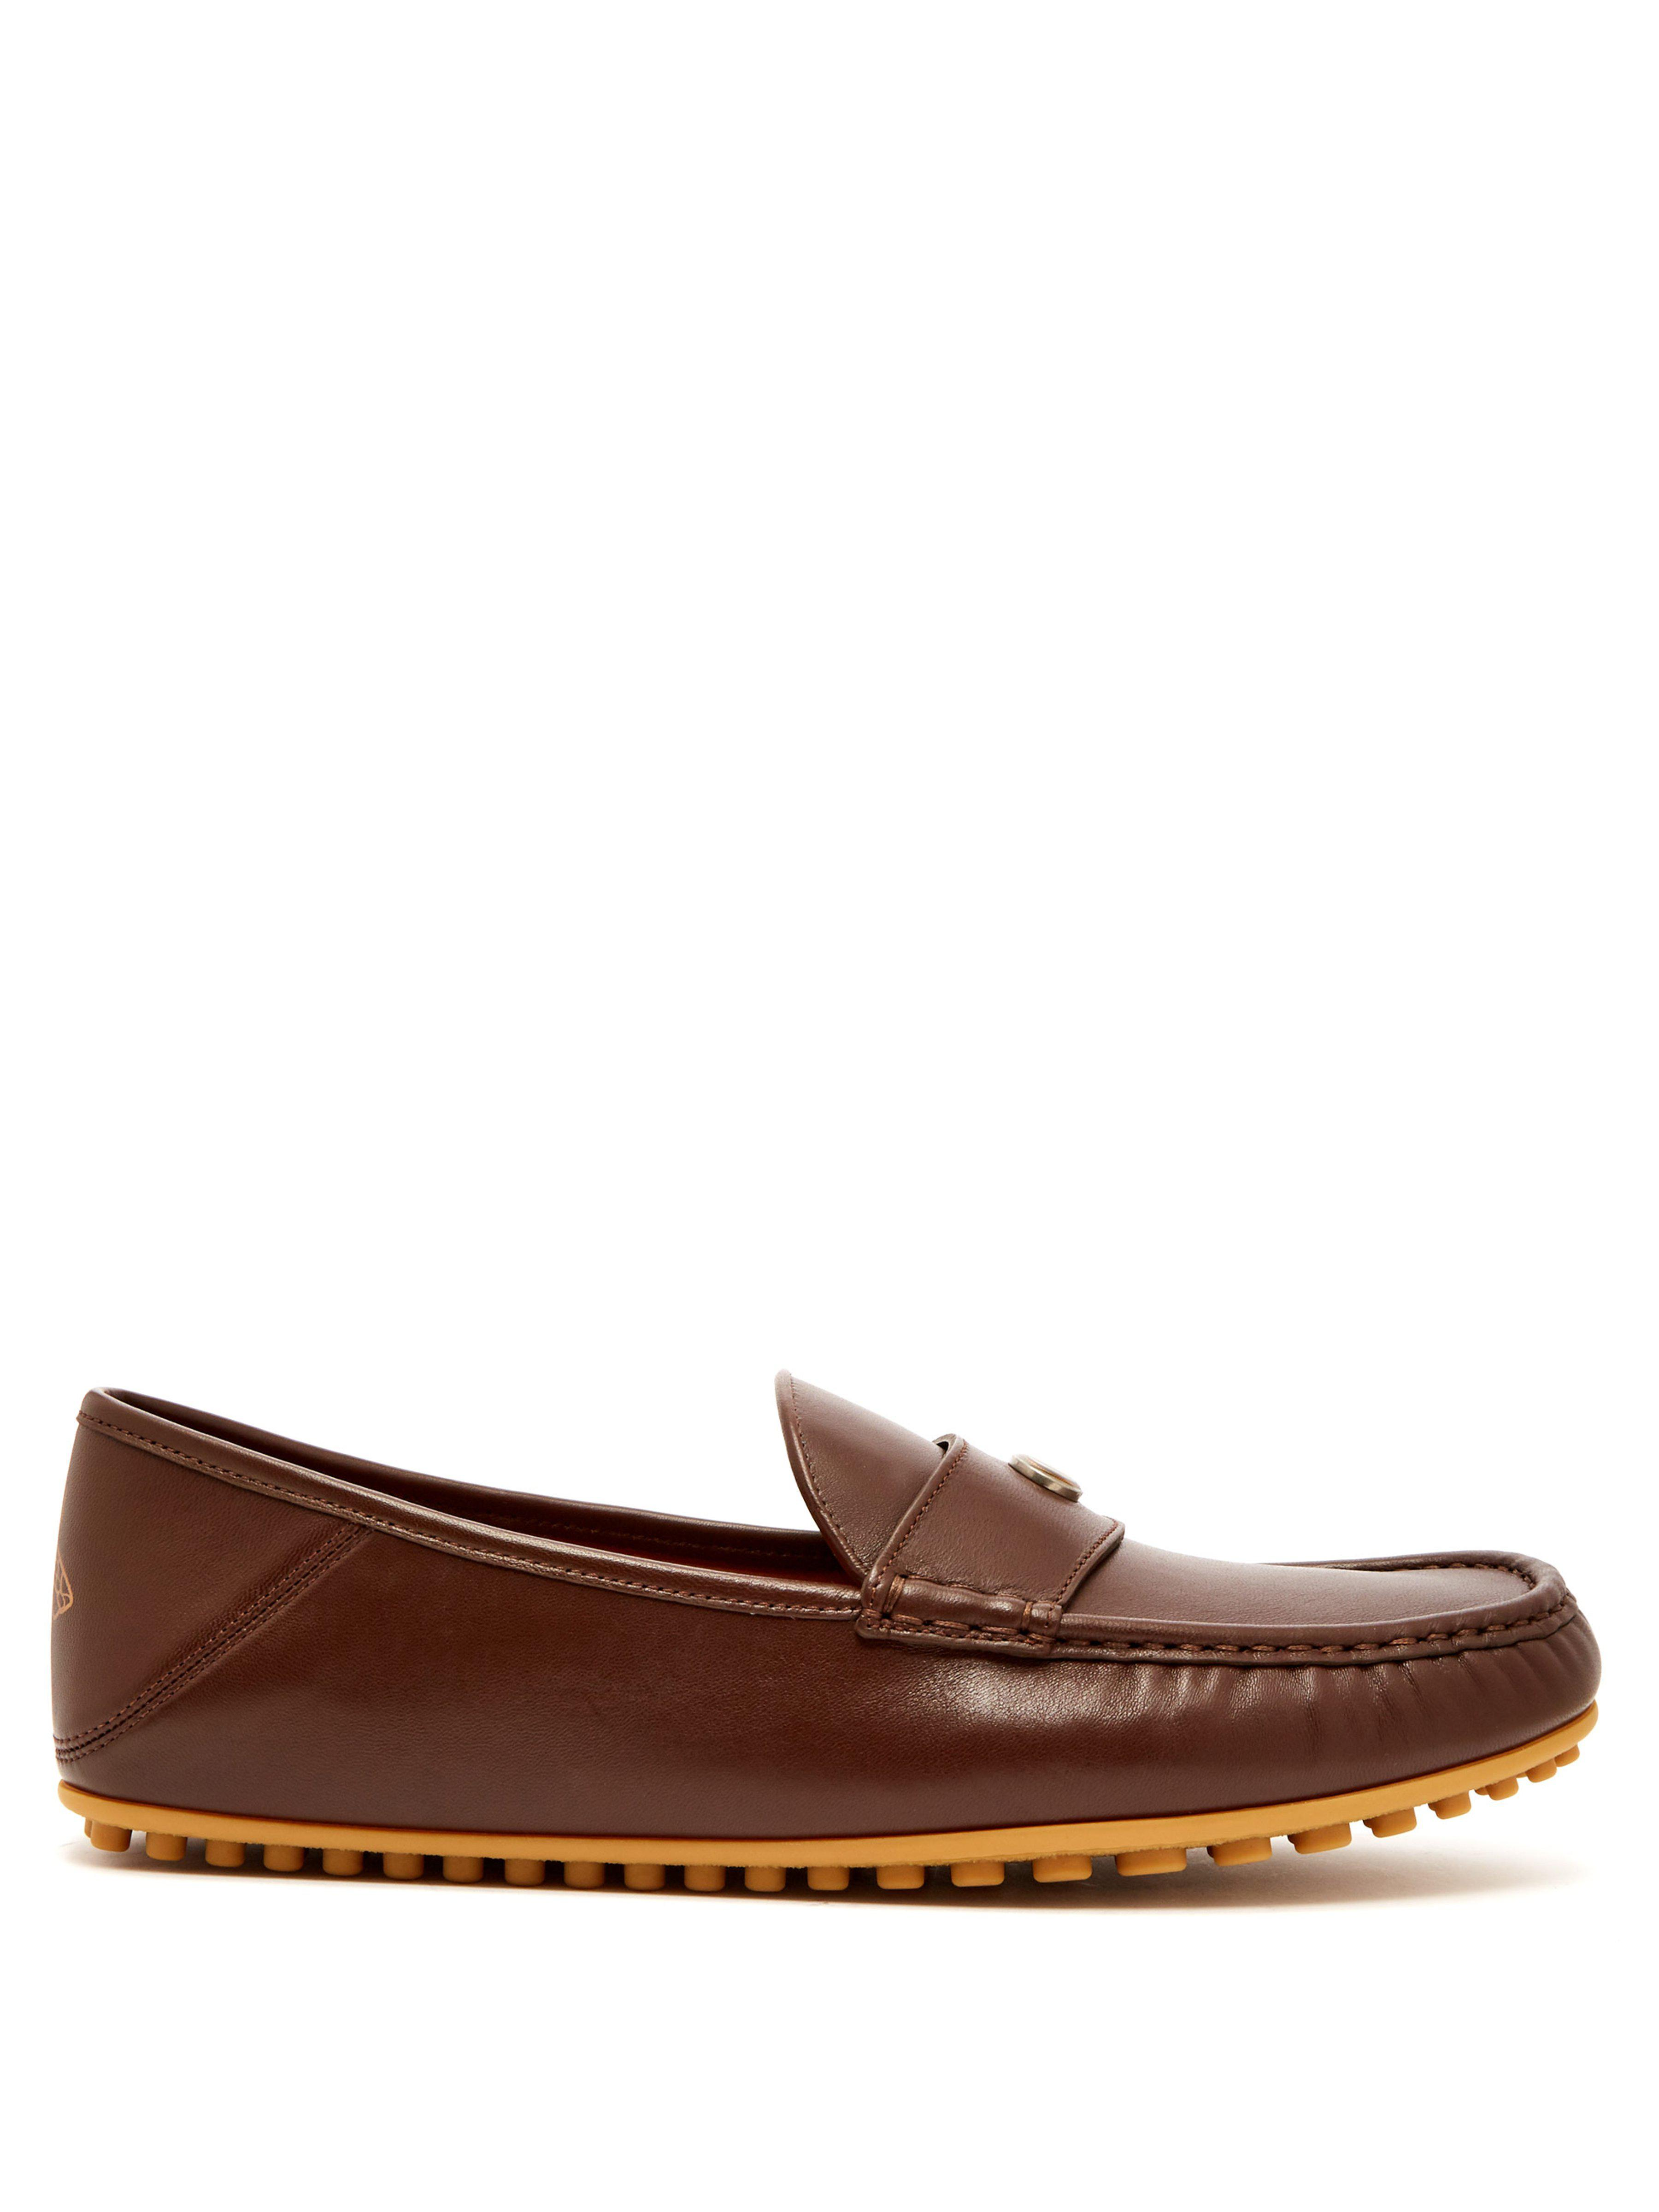 521ca1b52d68 Gucci Kanye Leather Loafers in Brown for Men - Lyst